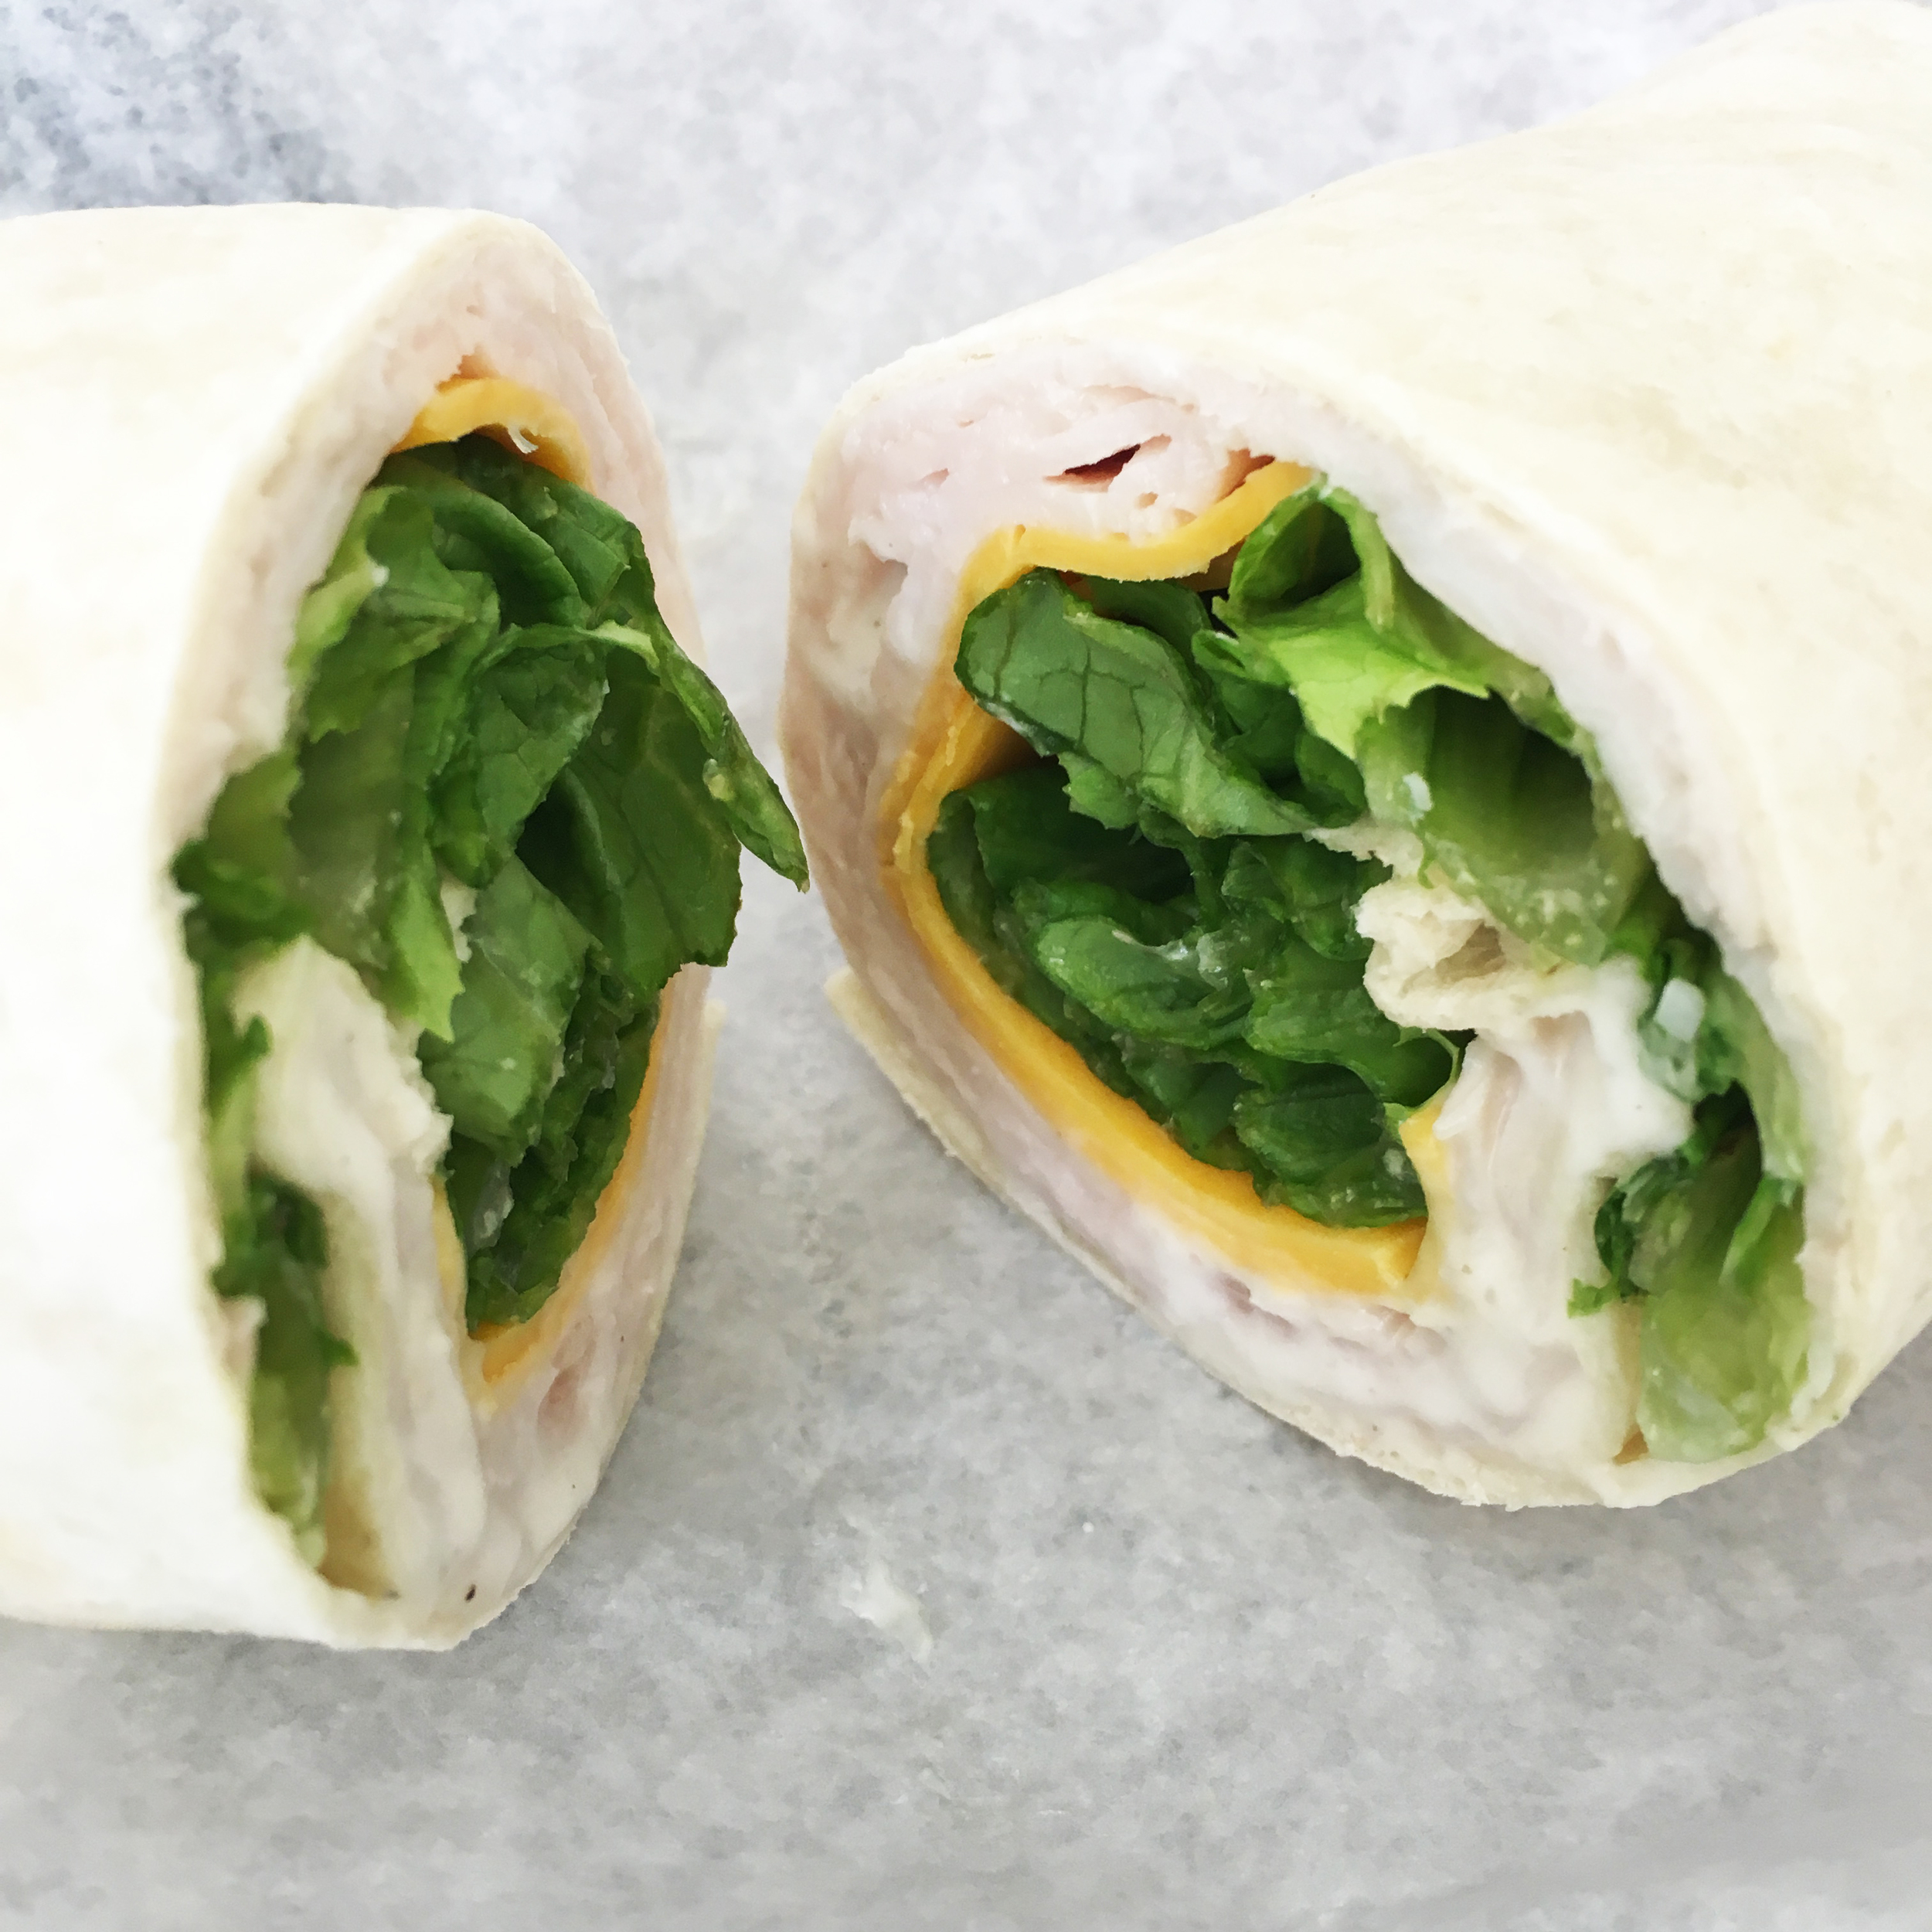 Trying to make better decisions at lunch means a basic wrap - at least it's not pizza ... today.